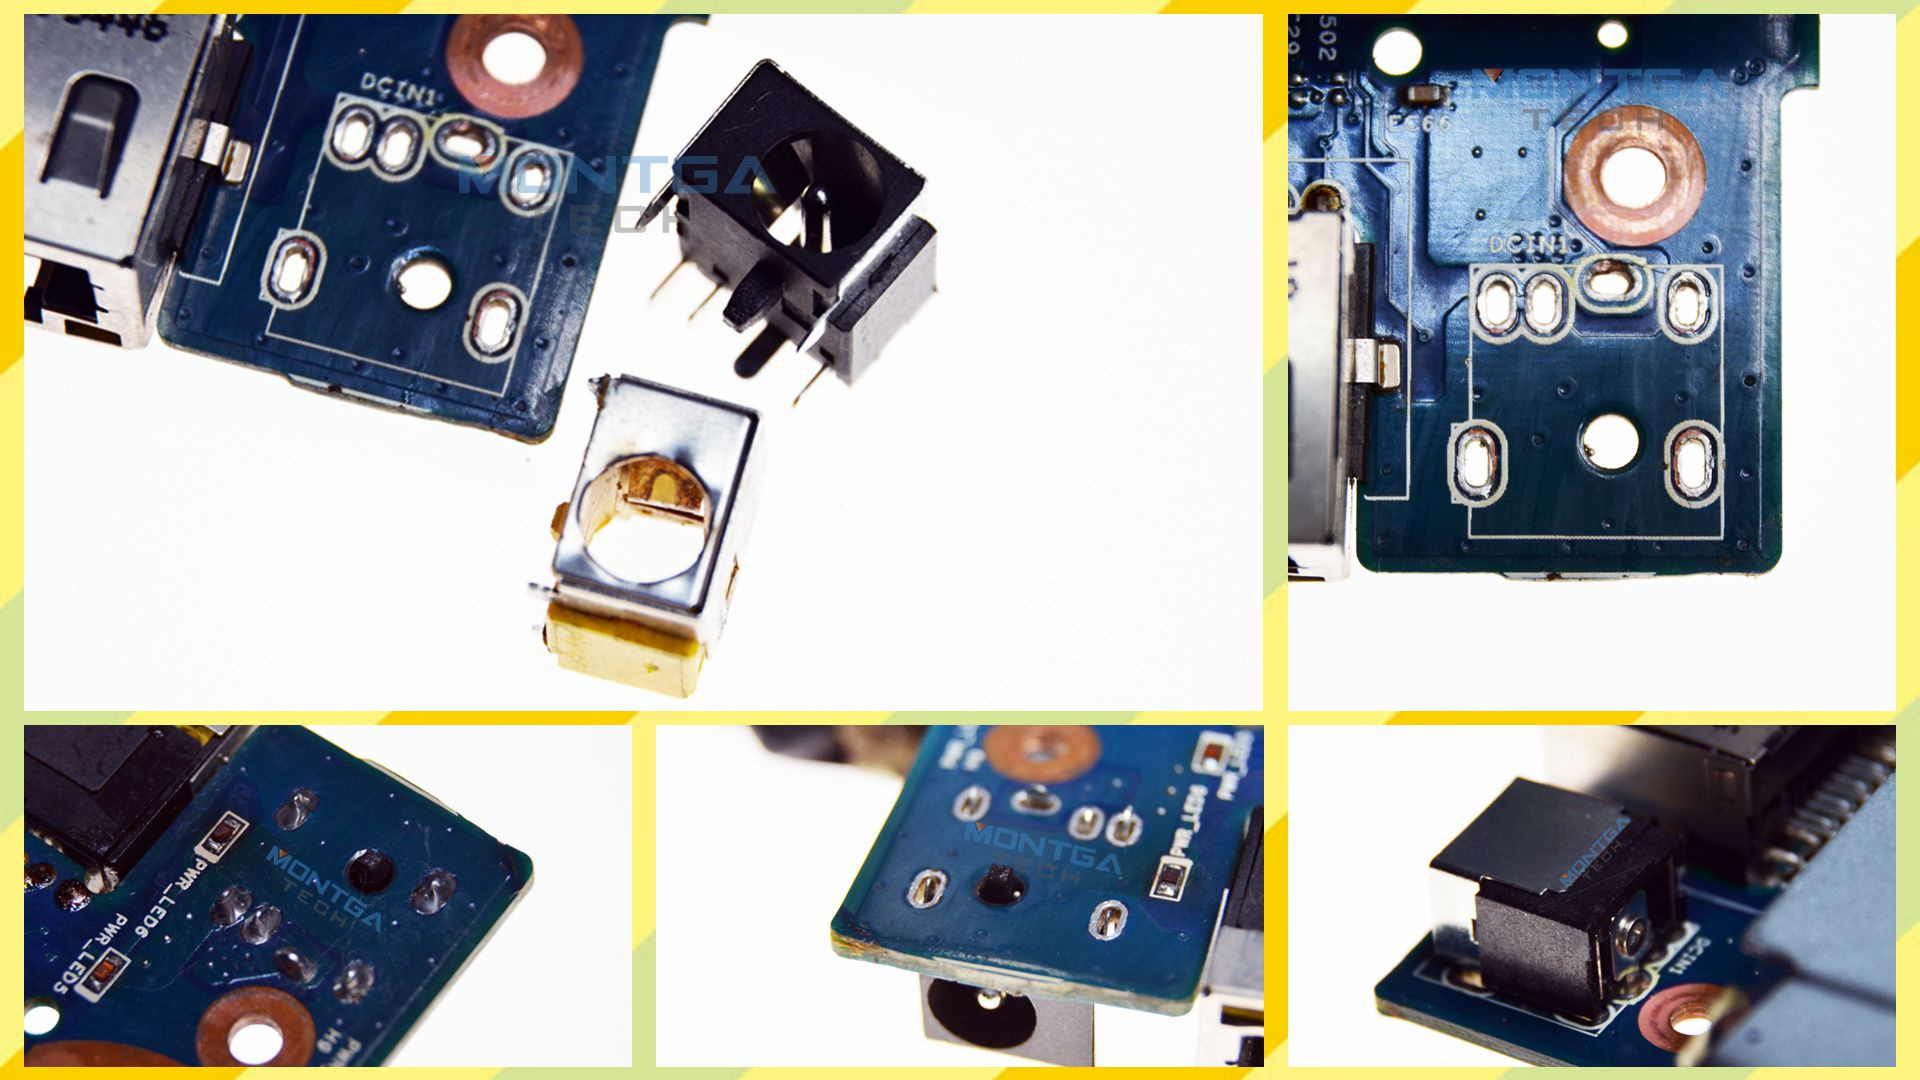 repair charging connector Acer 3001, repair DC Power Jack Acer 3001, repair Jack socket Acer 3001, repair plug Acer 3001, repair DC Alimantation Acer 3001, replace charging connector Acer 3001, replace DC Power Jack Acer 3001, replace Jack socket Acer 3001, replace plug Acer 3001, replace DC Alimantation Acer 3001,